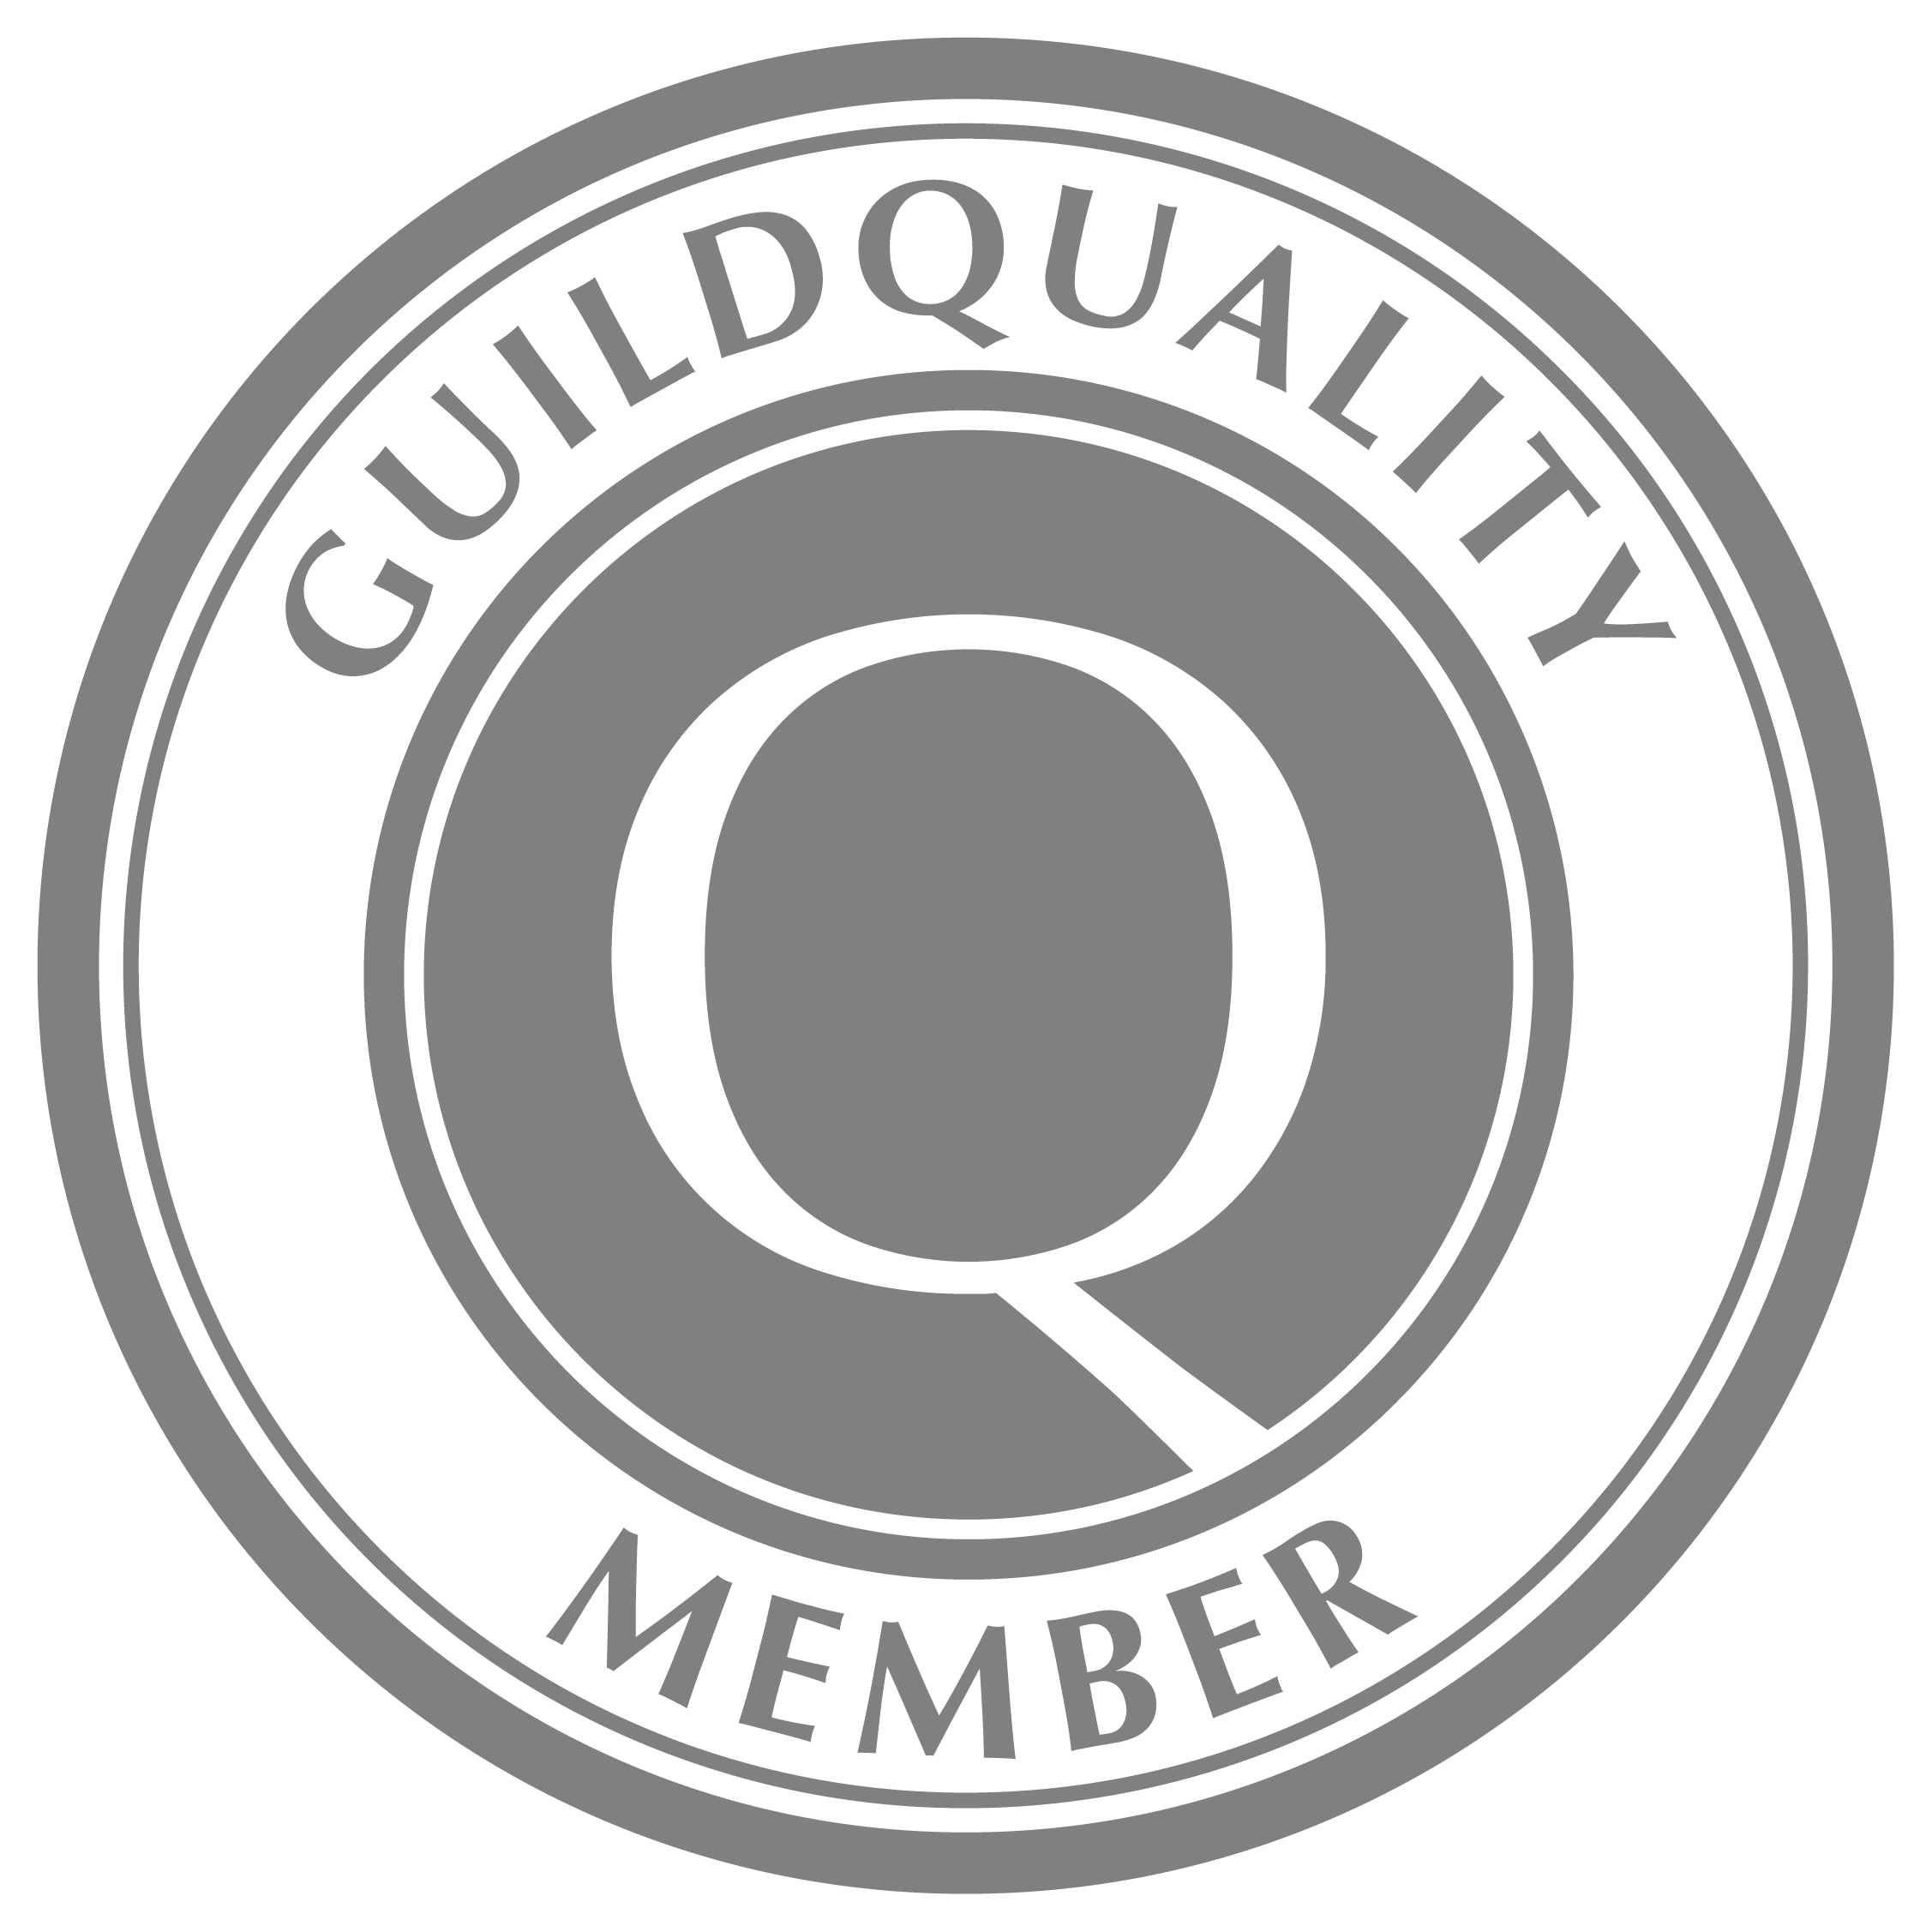 Guild Quality member_Gray